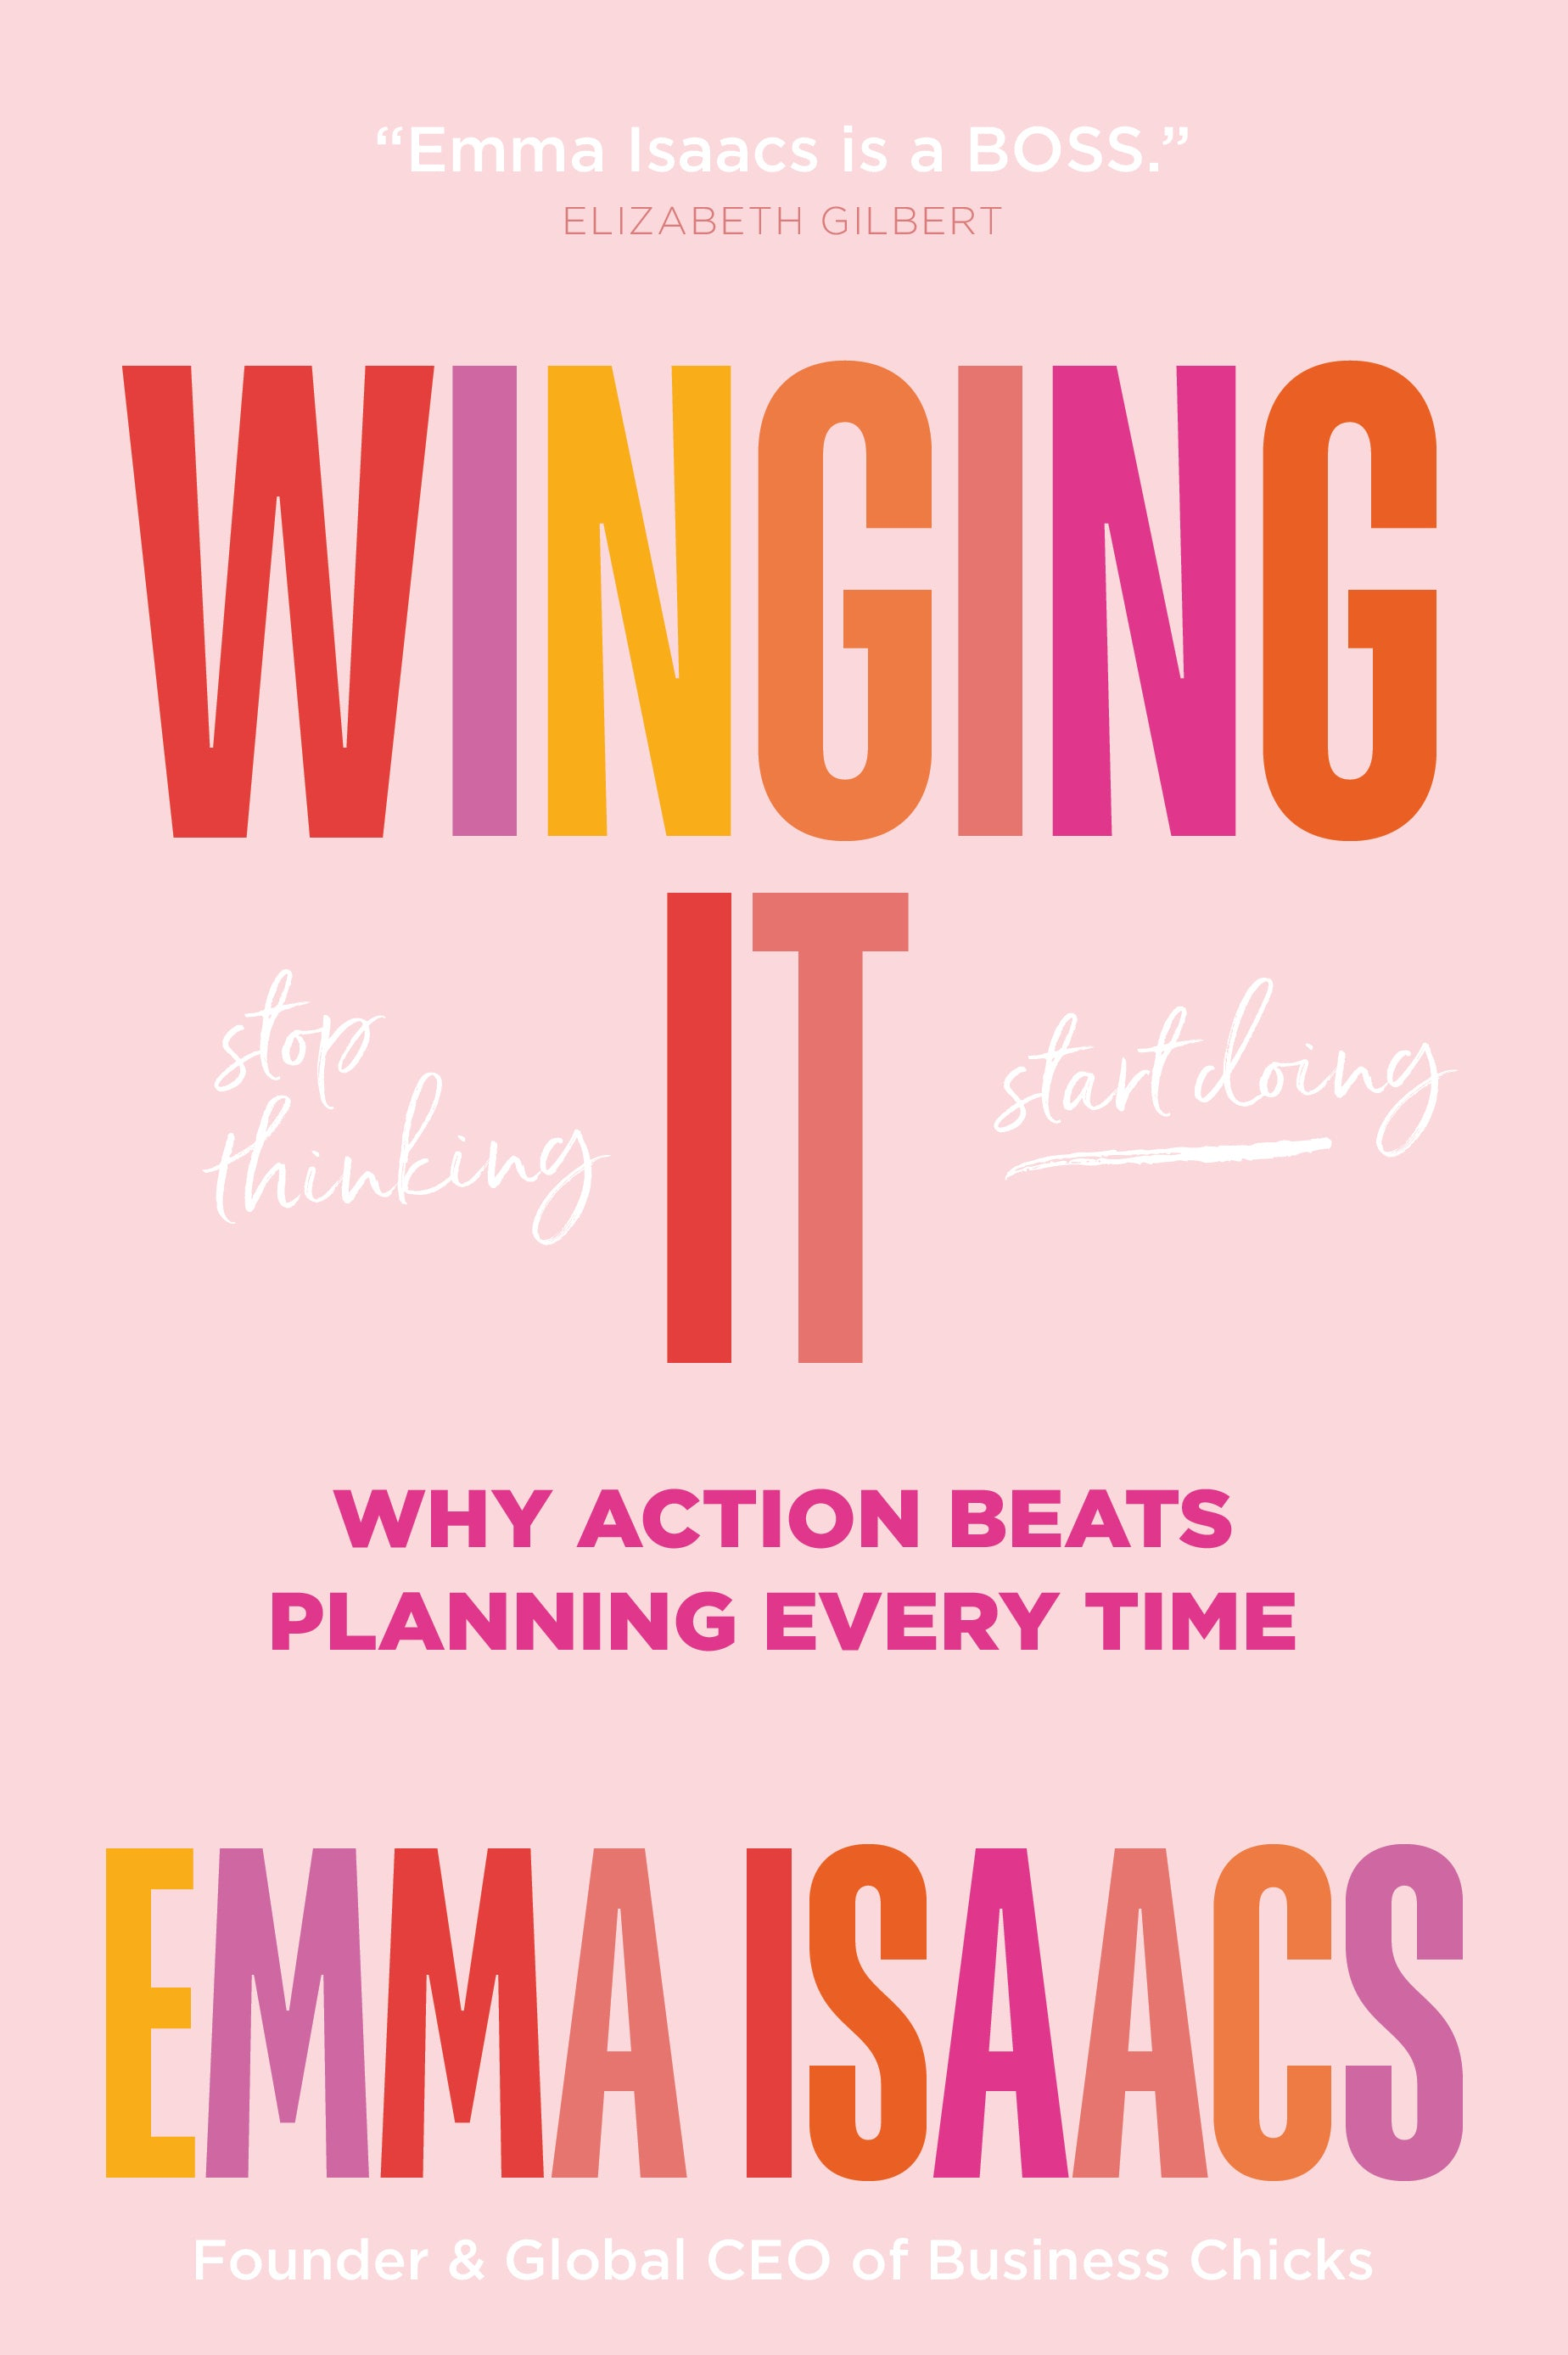 Winging It: Stop Thinking, Start Doing